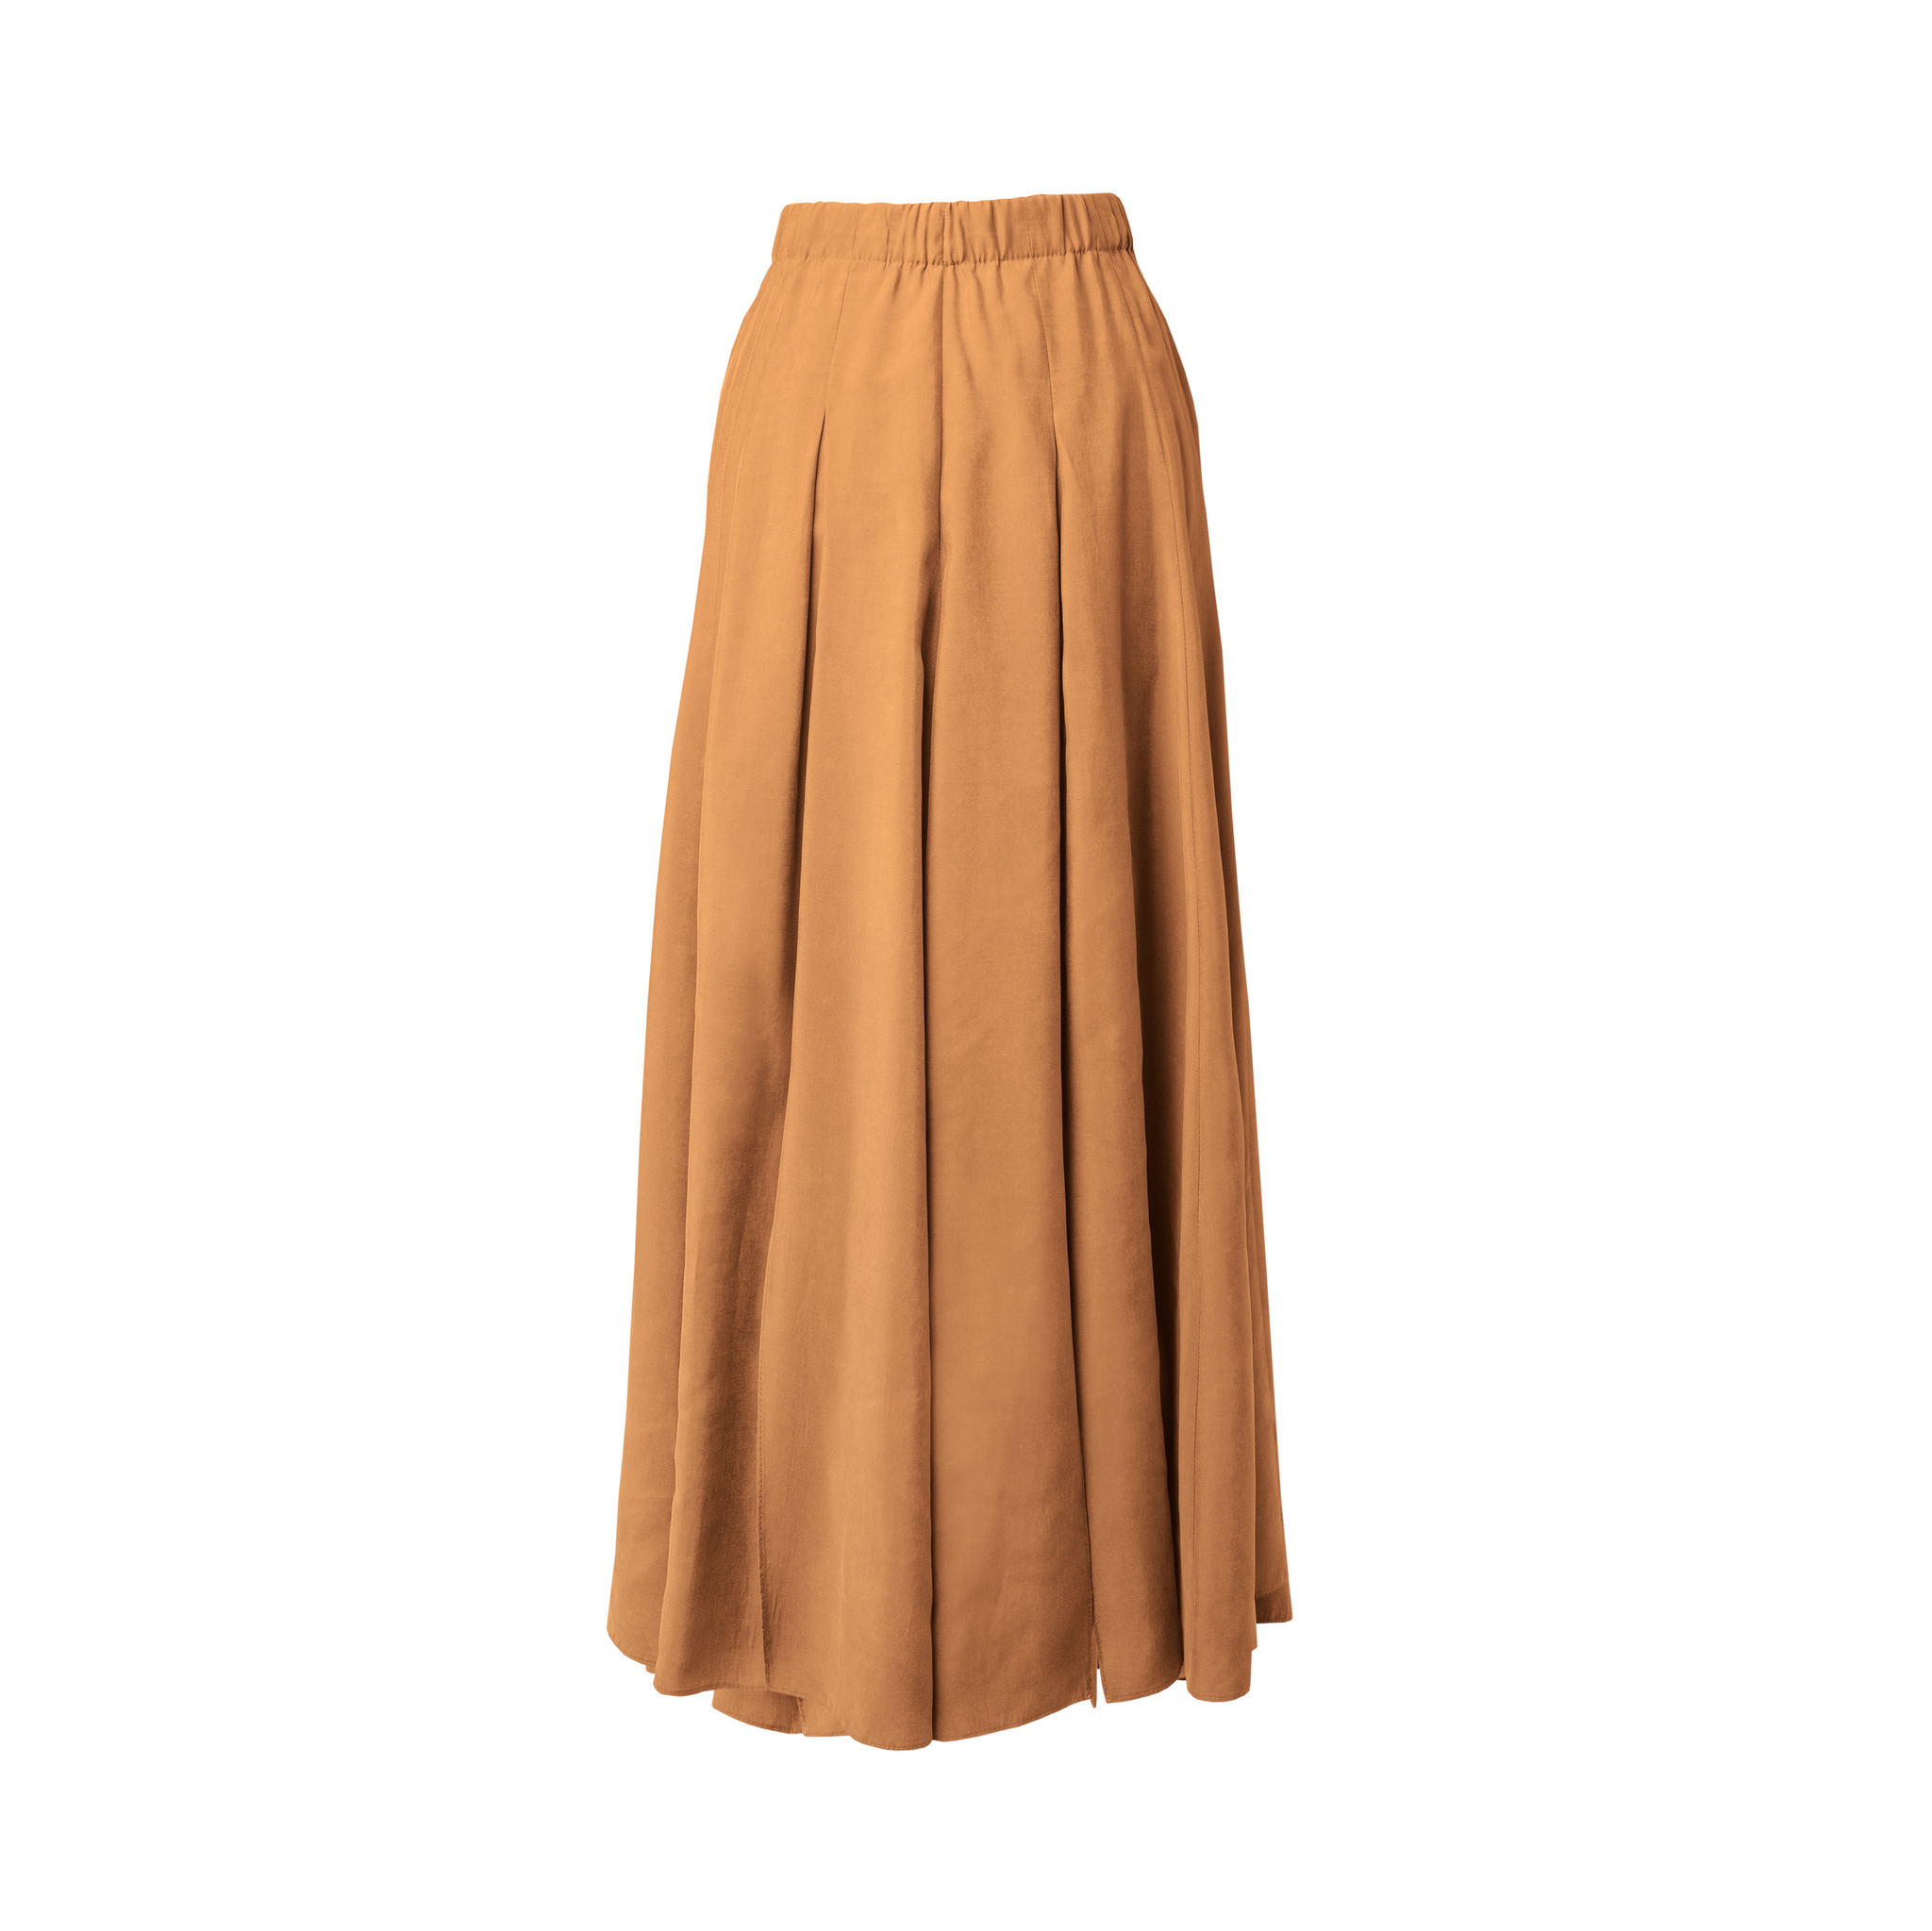 Vac Rust Multi Slits Midi Skirt